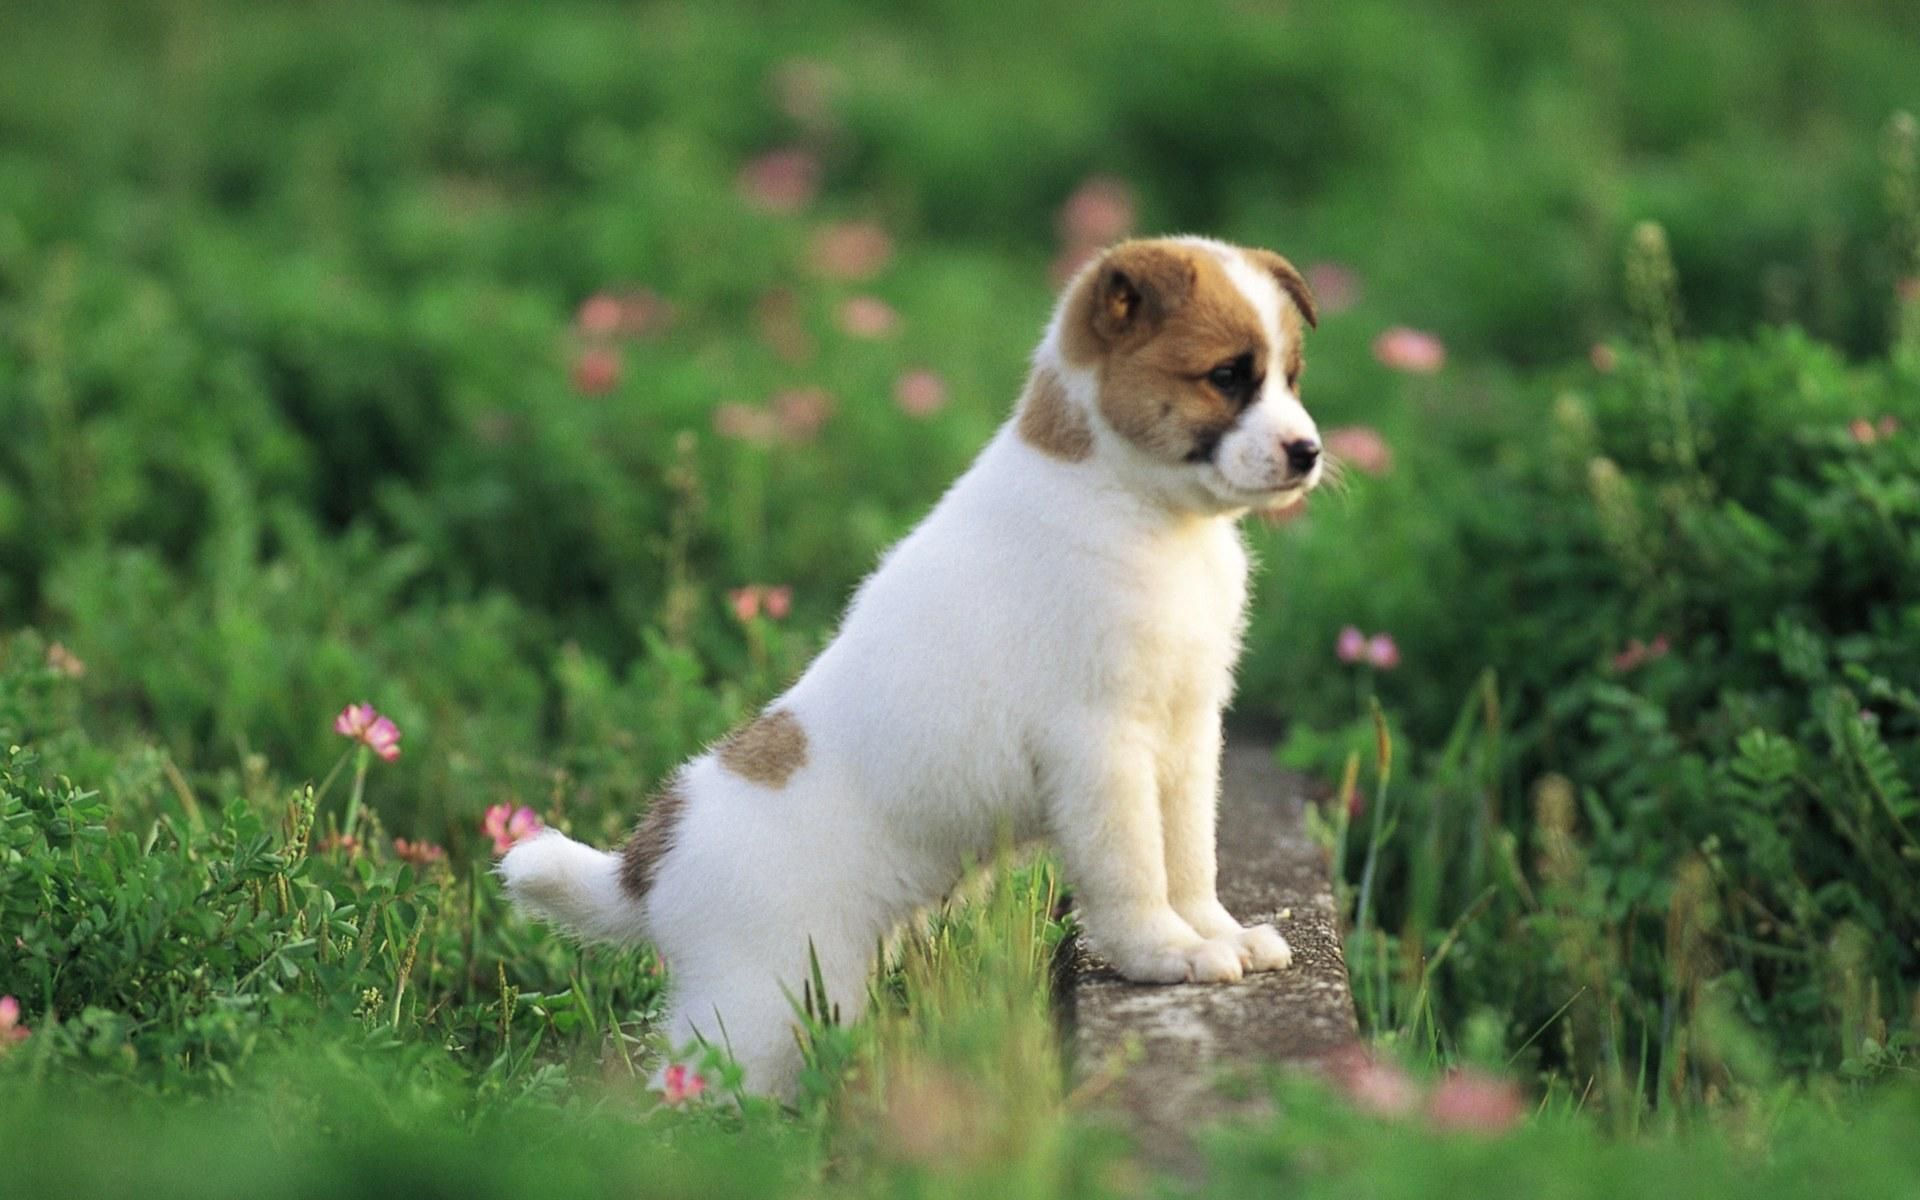 animals | cute dog hd wallpaper | hd wallpapers 1080p | cute